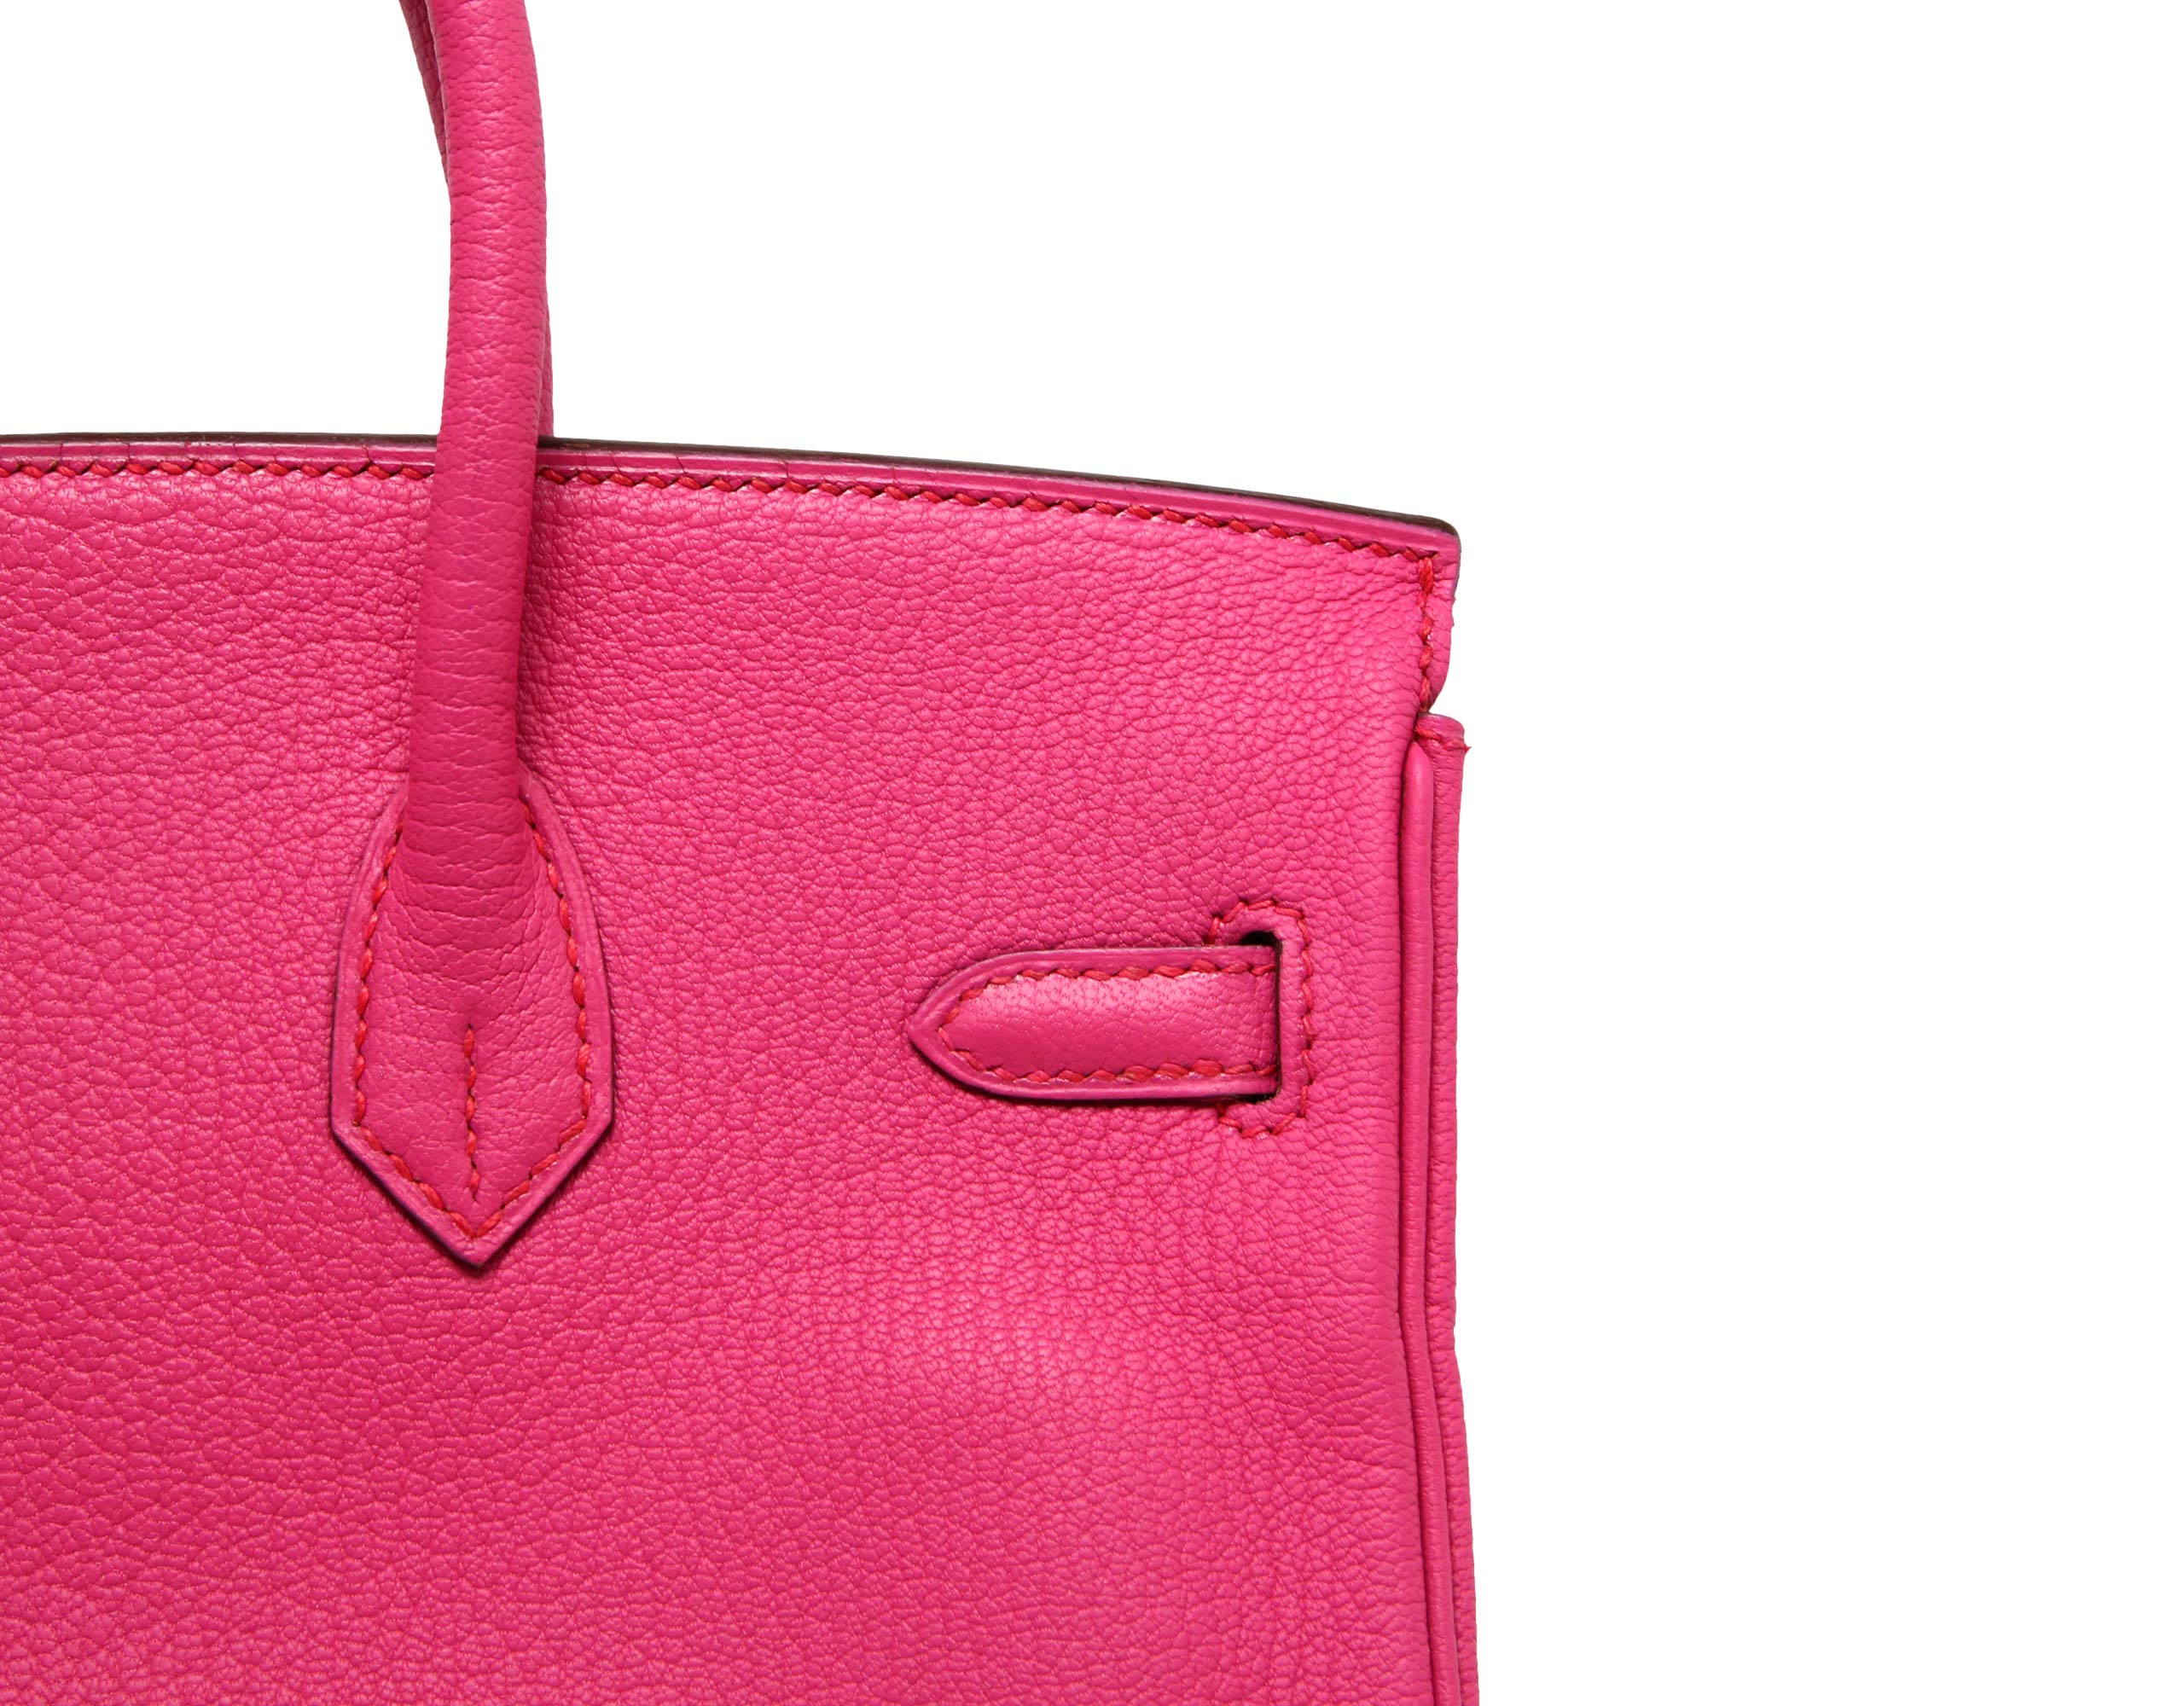 25cm Birkin Fuchsia Chevre with Palladium. Stamp: L 2008.